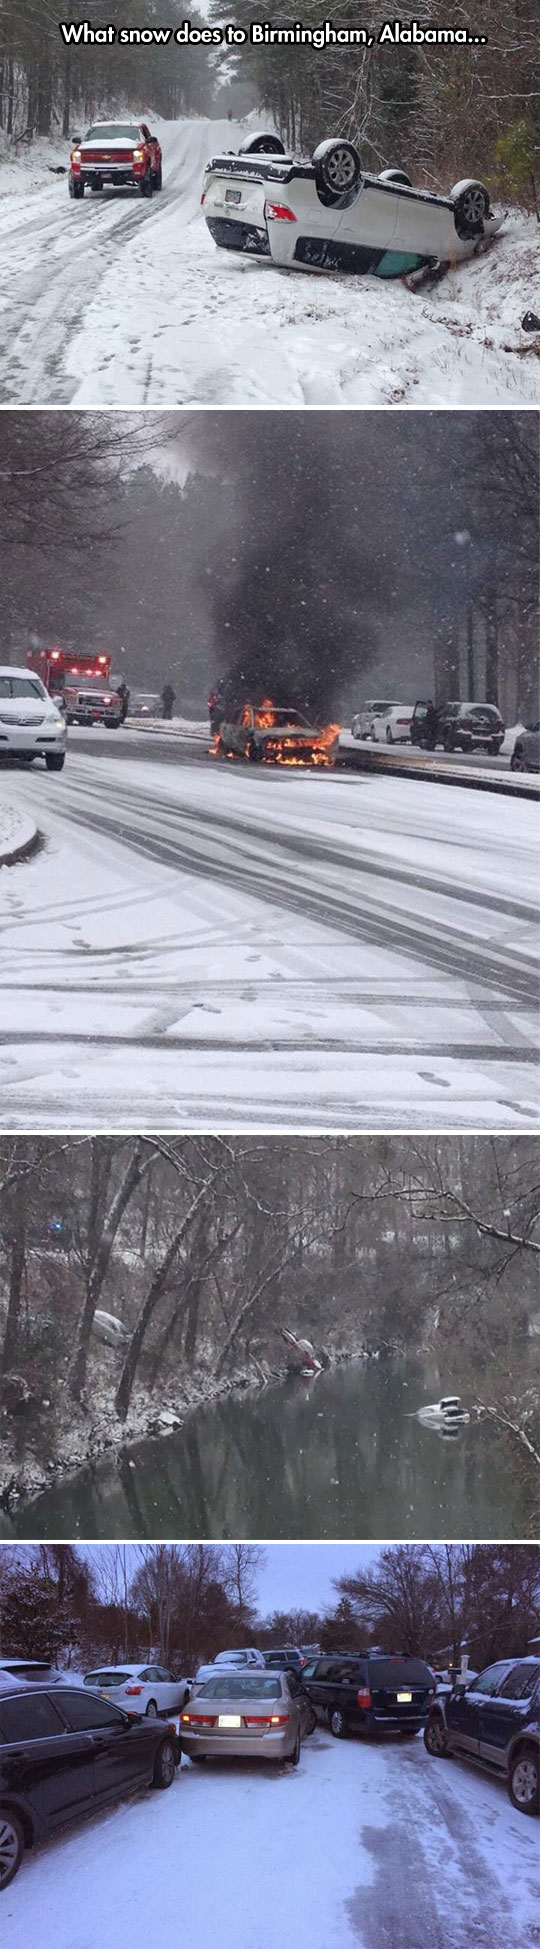 funny-winter-snow-accidents-car-roads